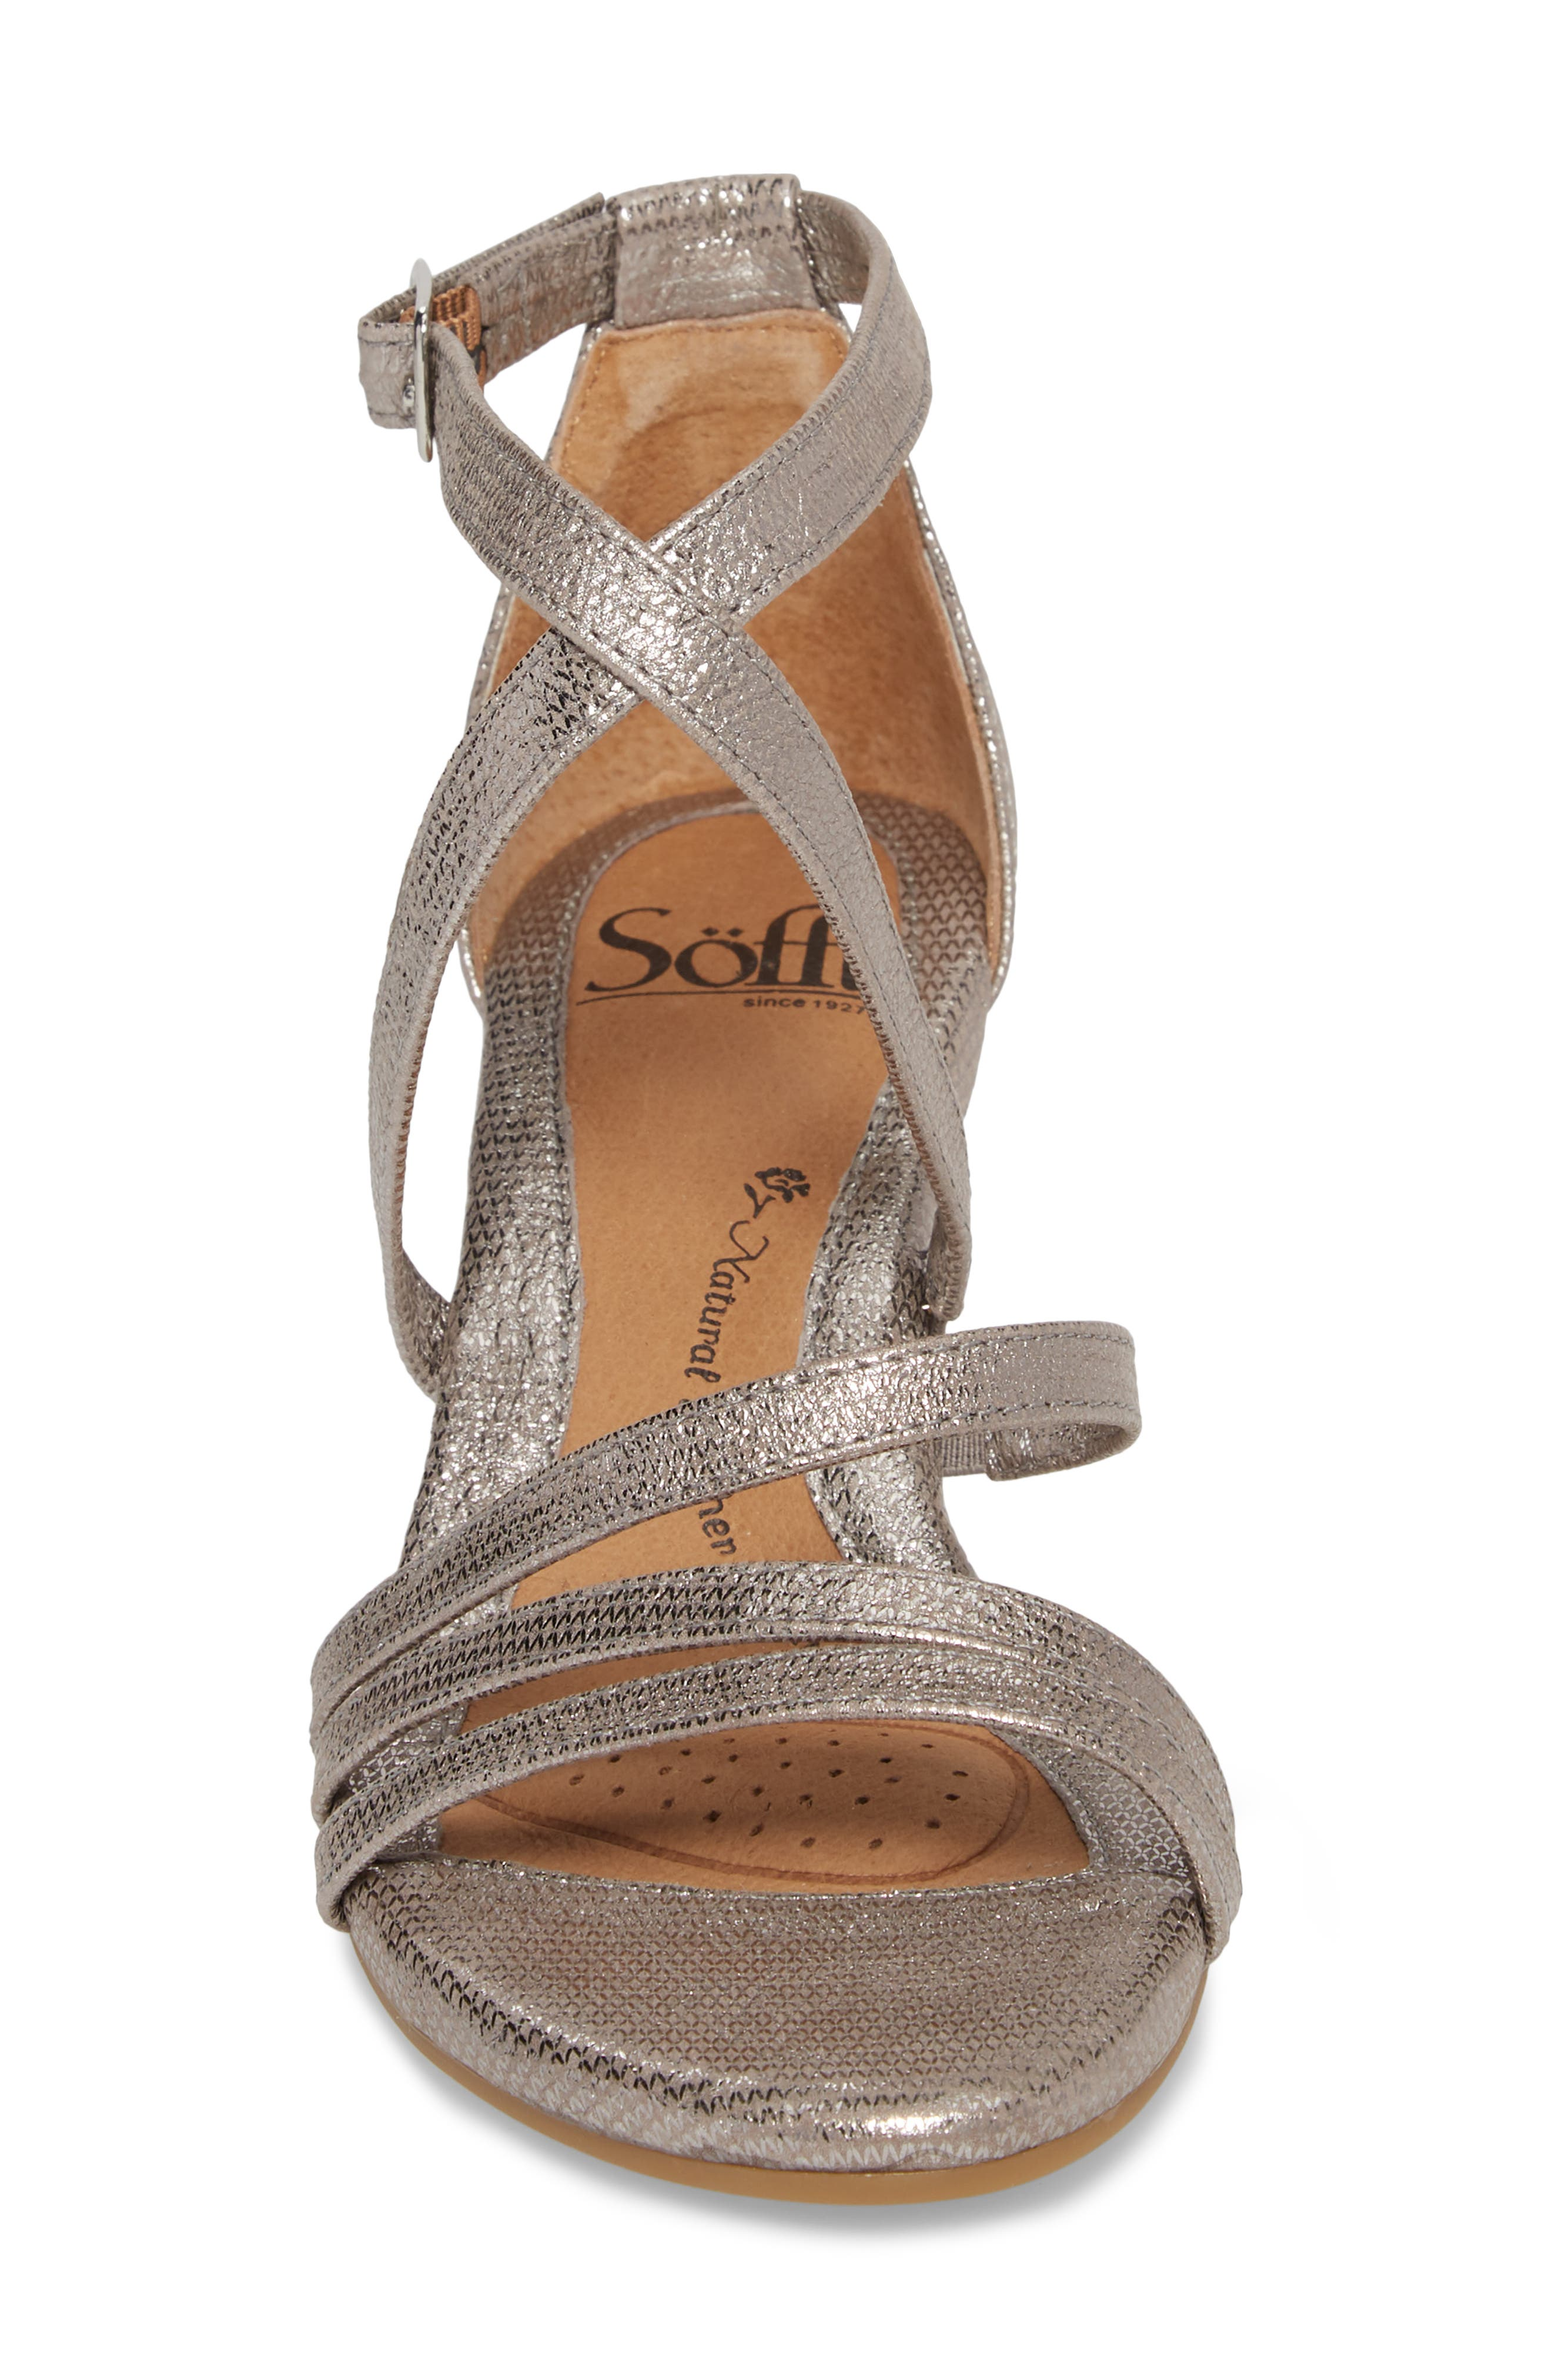 Mecina Wedge Sandal,                             Alternate thumbnail 4, color,                             SILVER METALLIC LEATHER